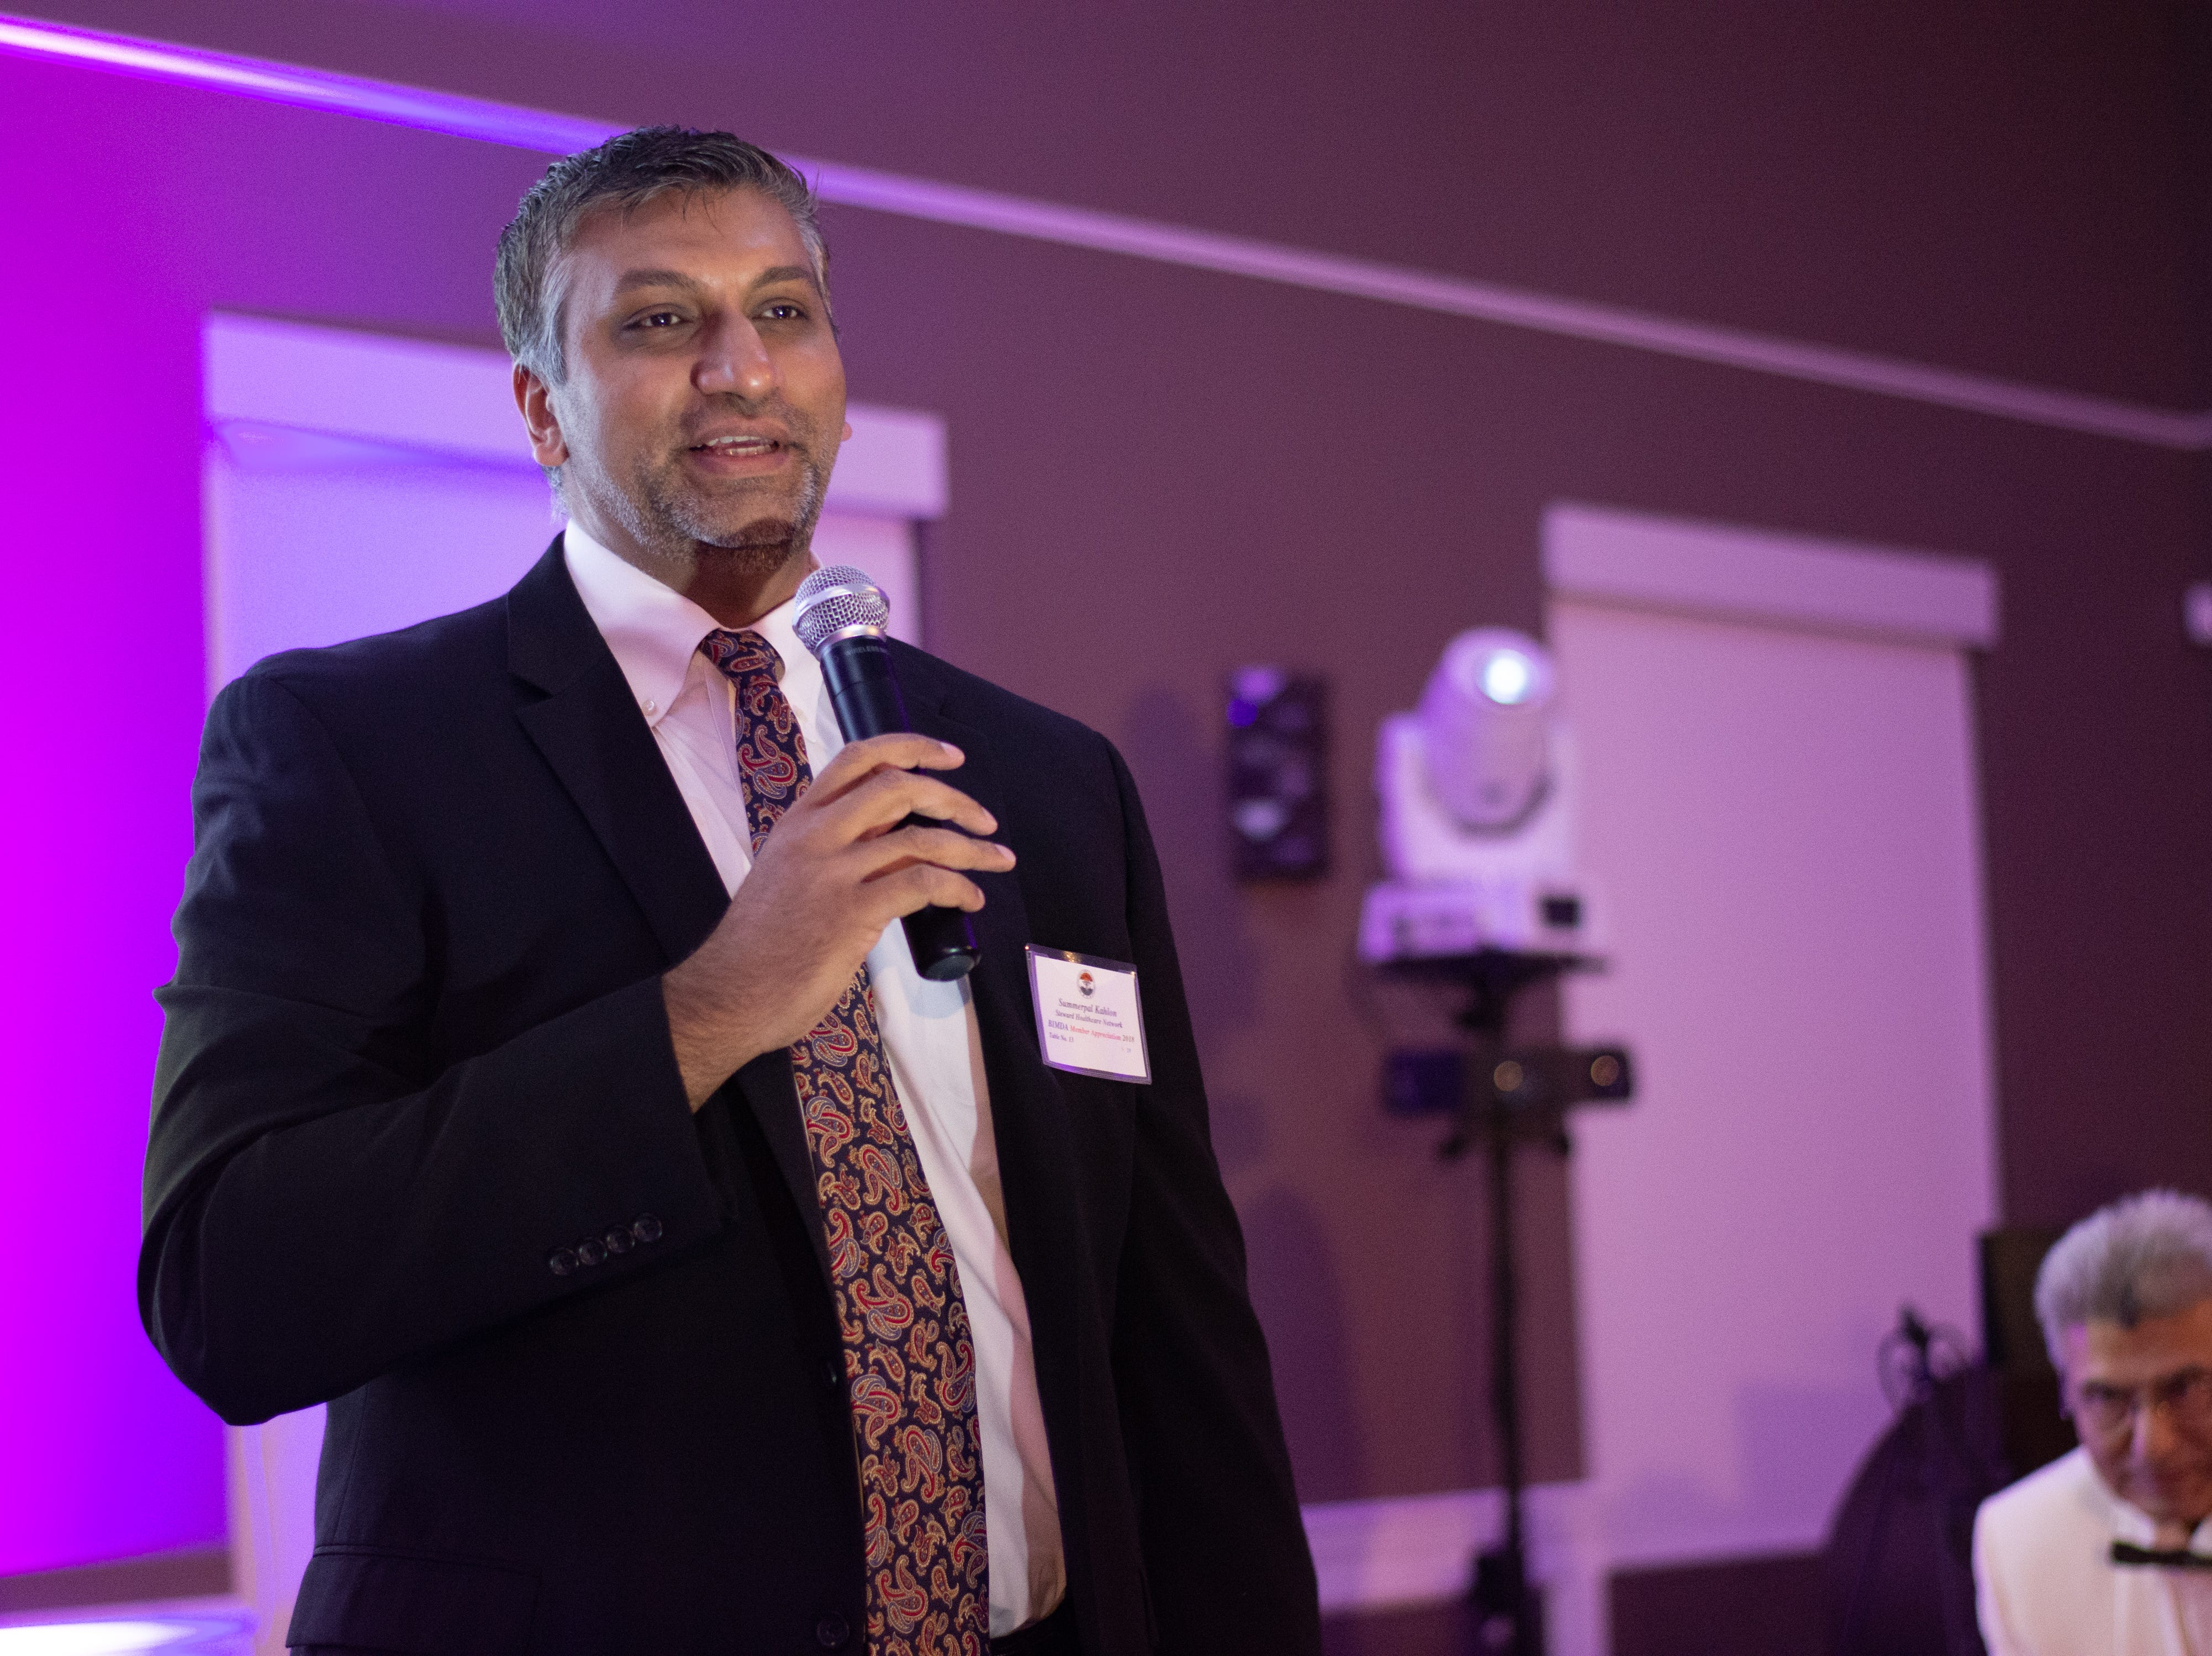 Steward Healthcare Network Chief Medical Information Officer Dr. Sumerpal Kahlon speaks during the ceremony.